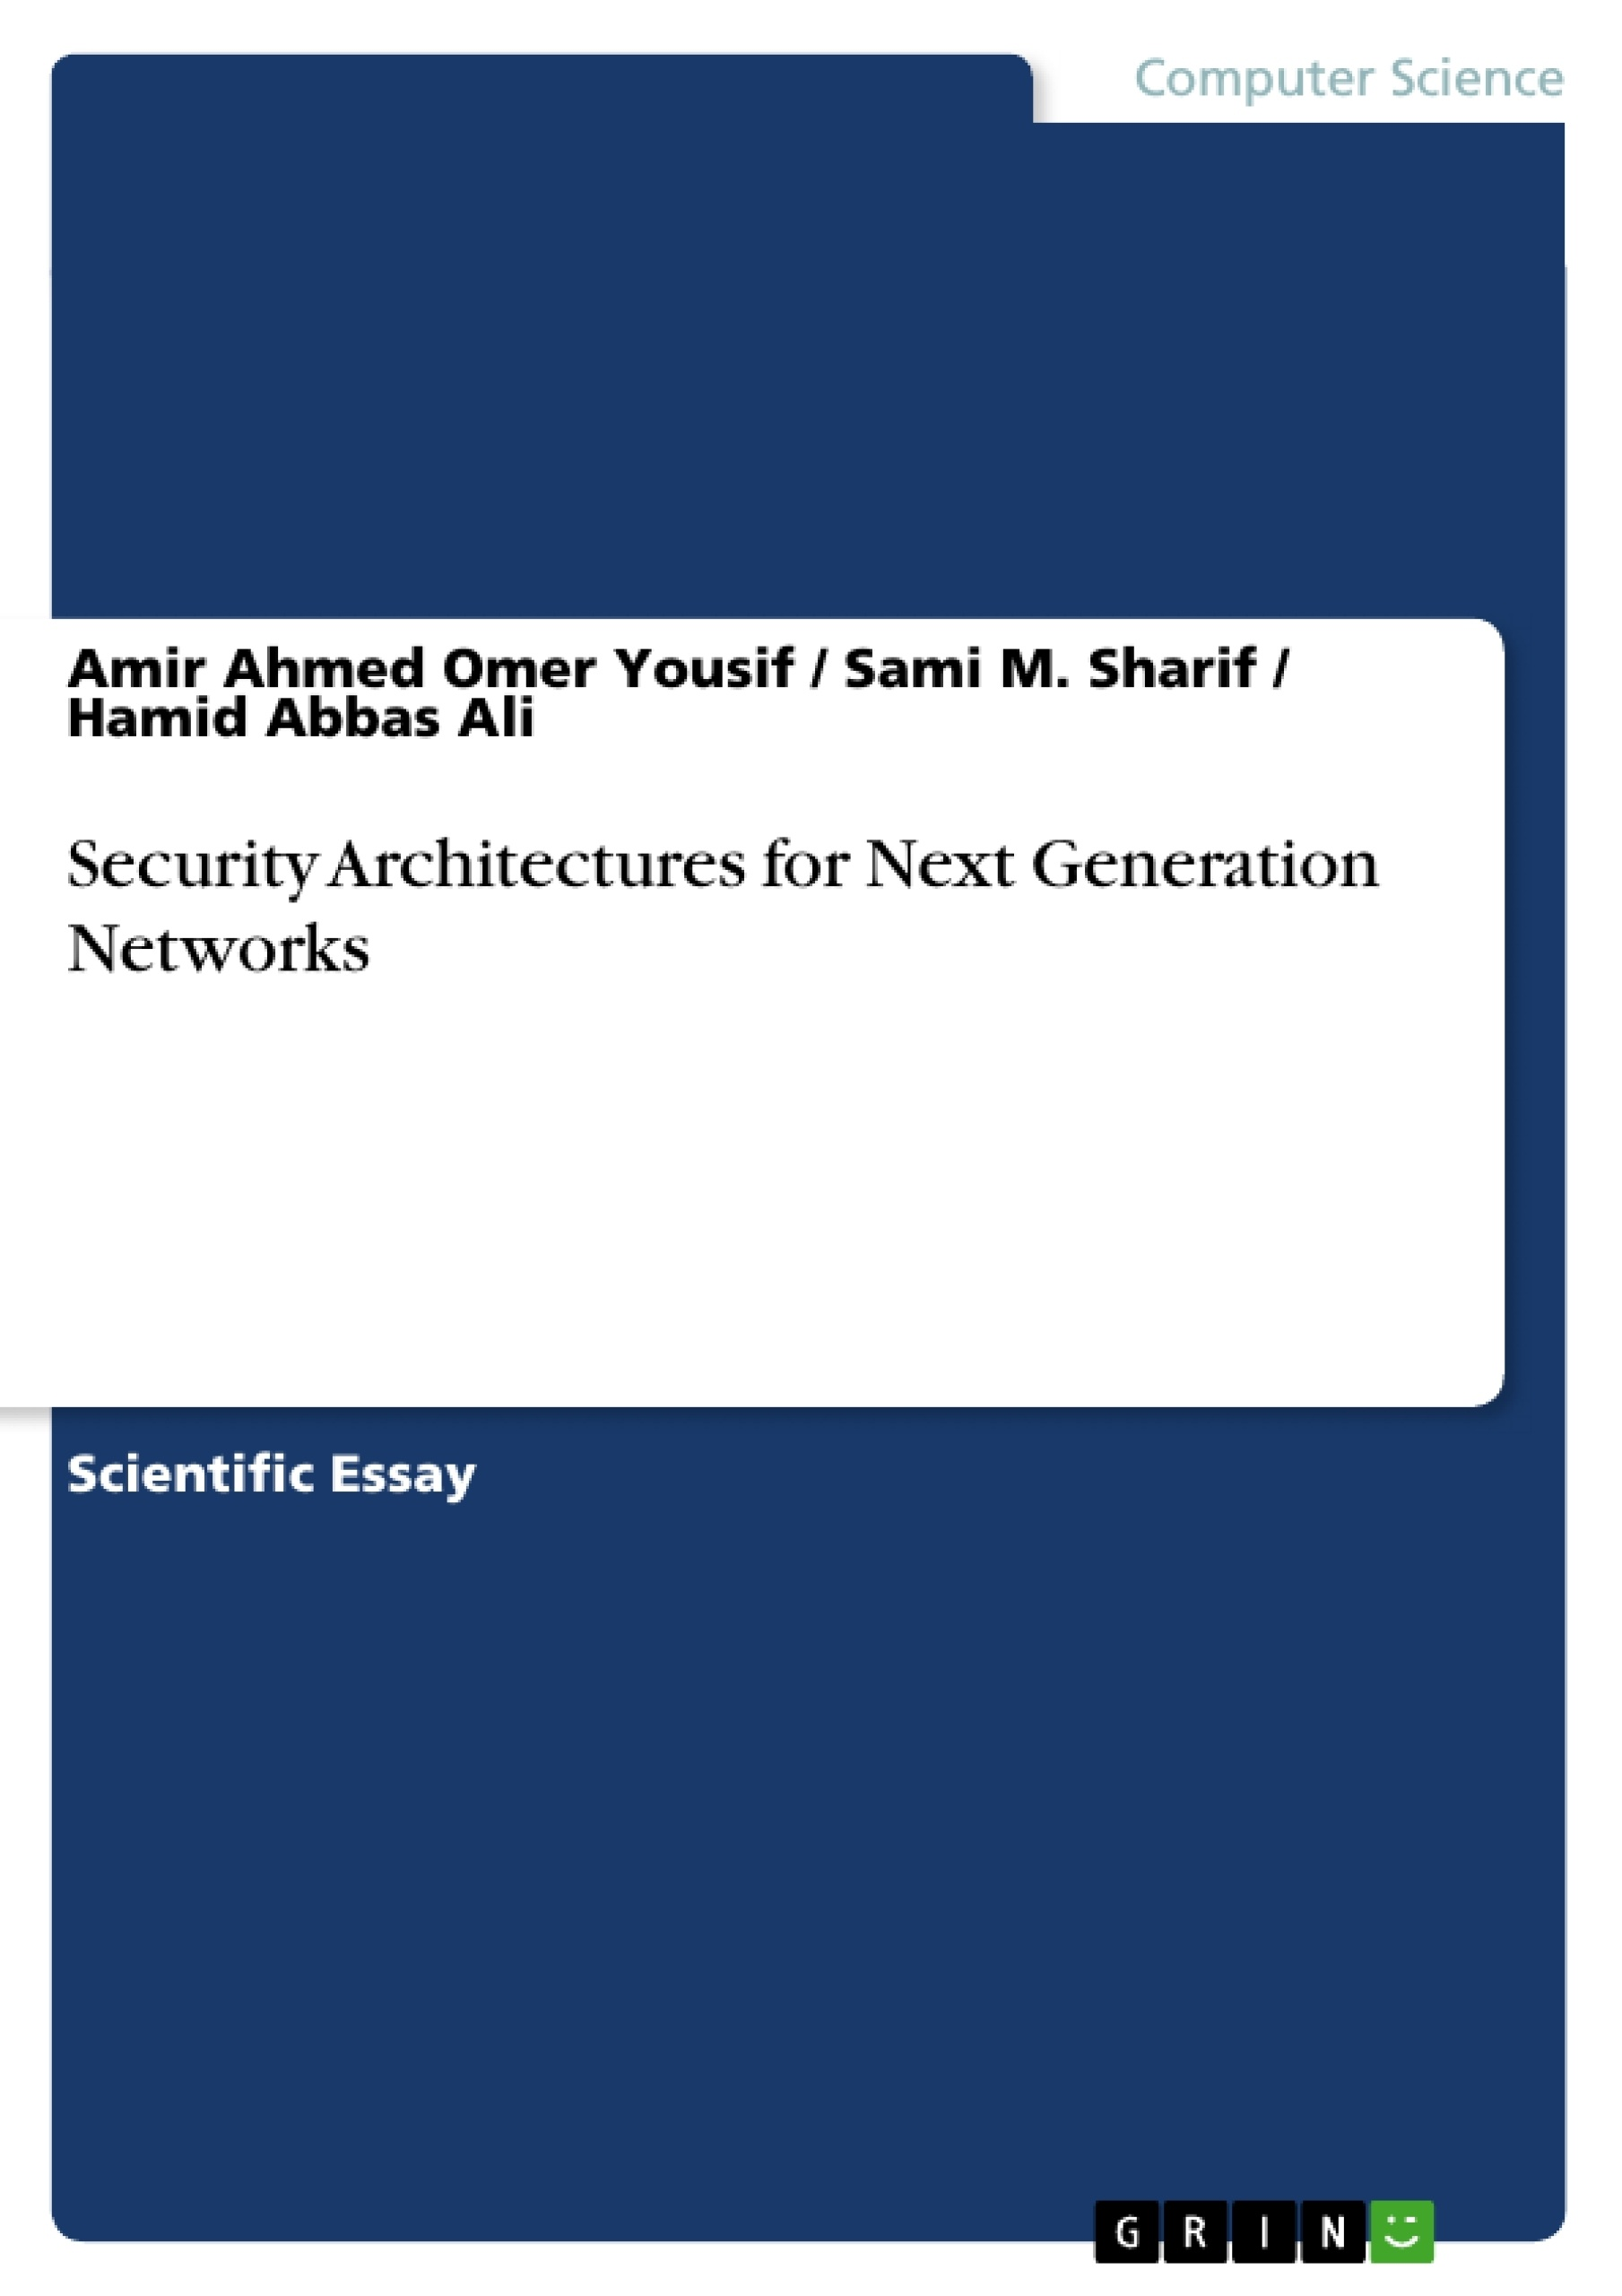 Title: Security Architectures for Next Generation Networks